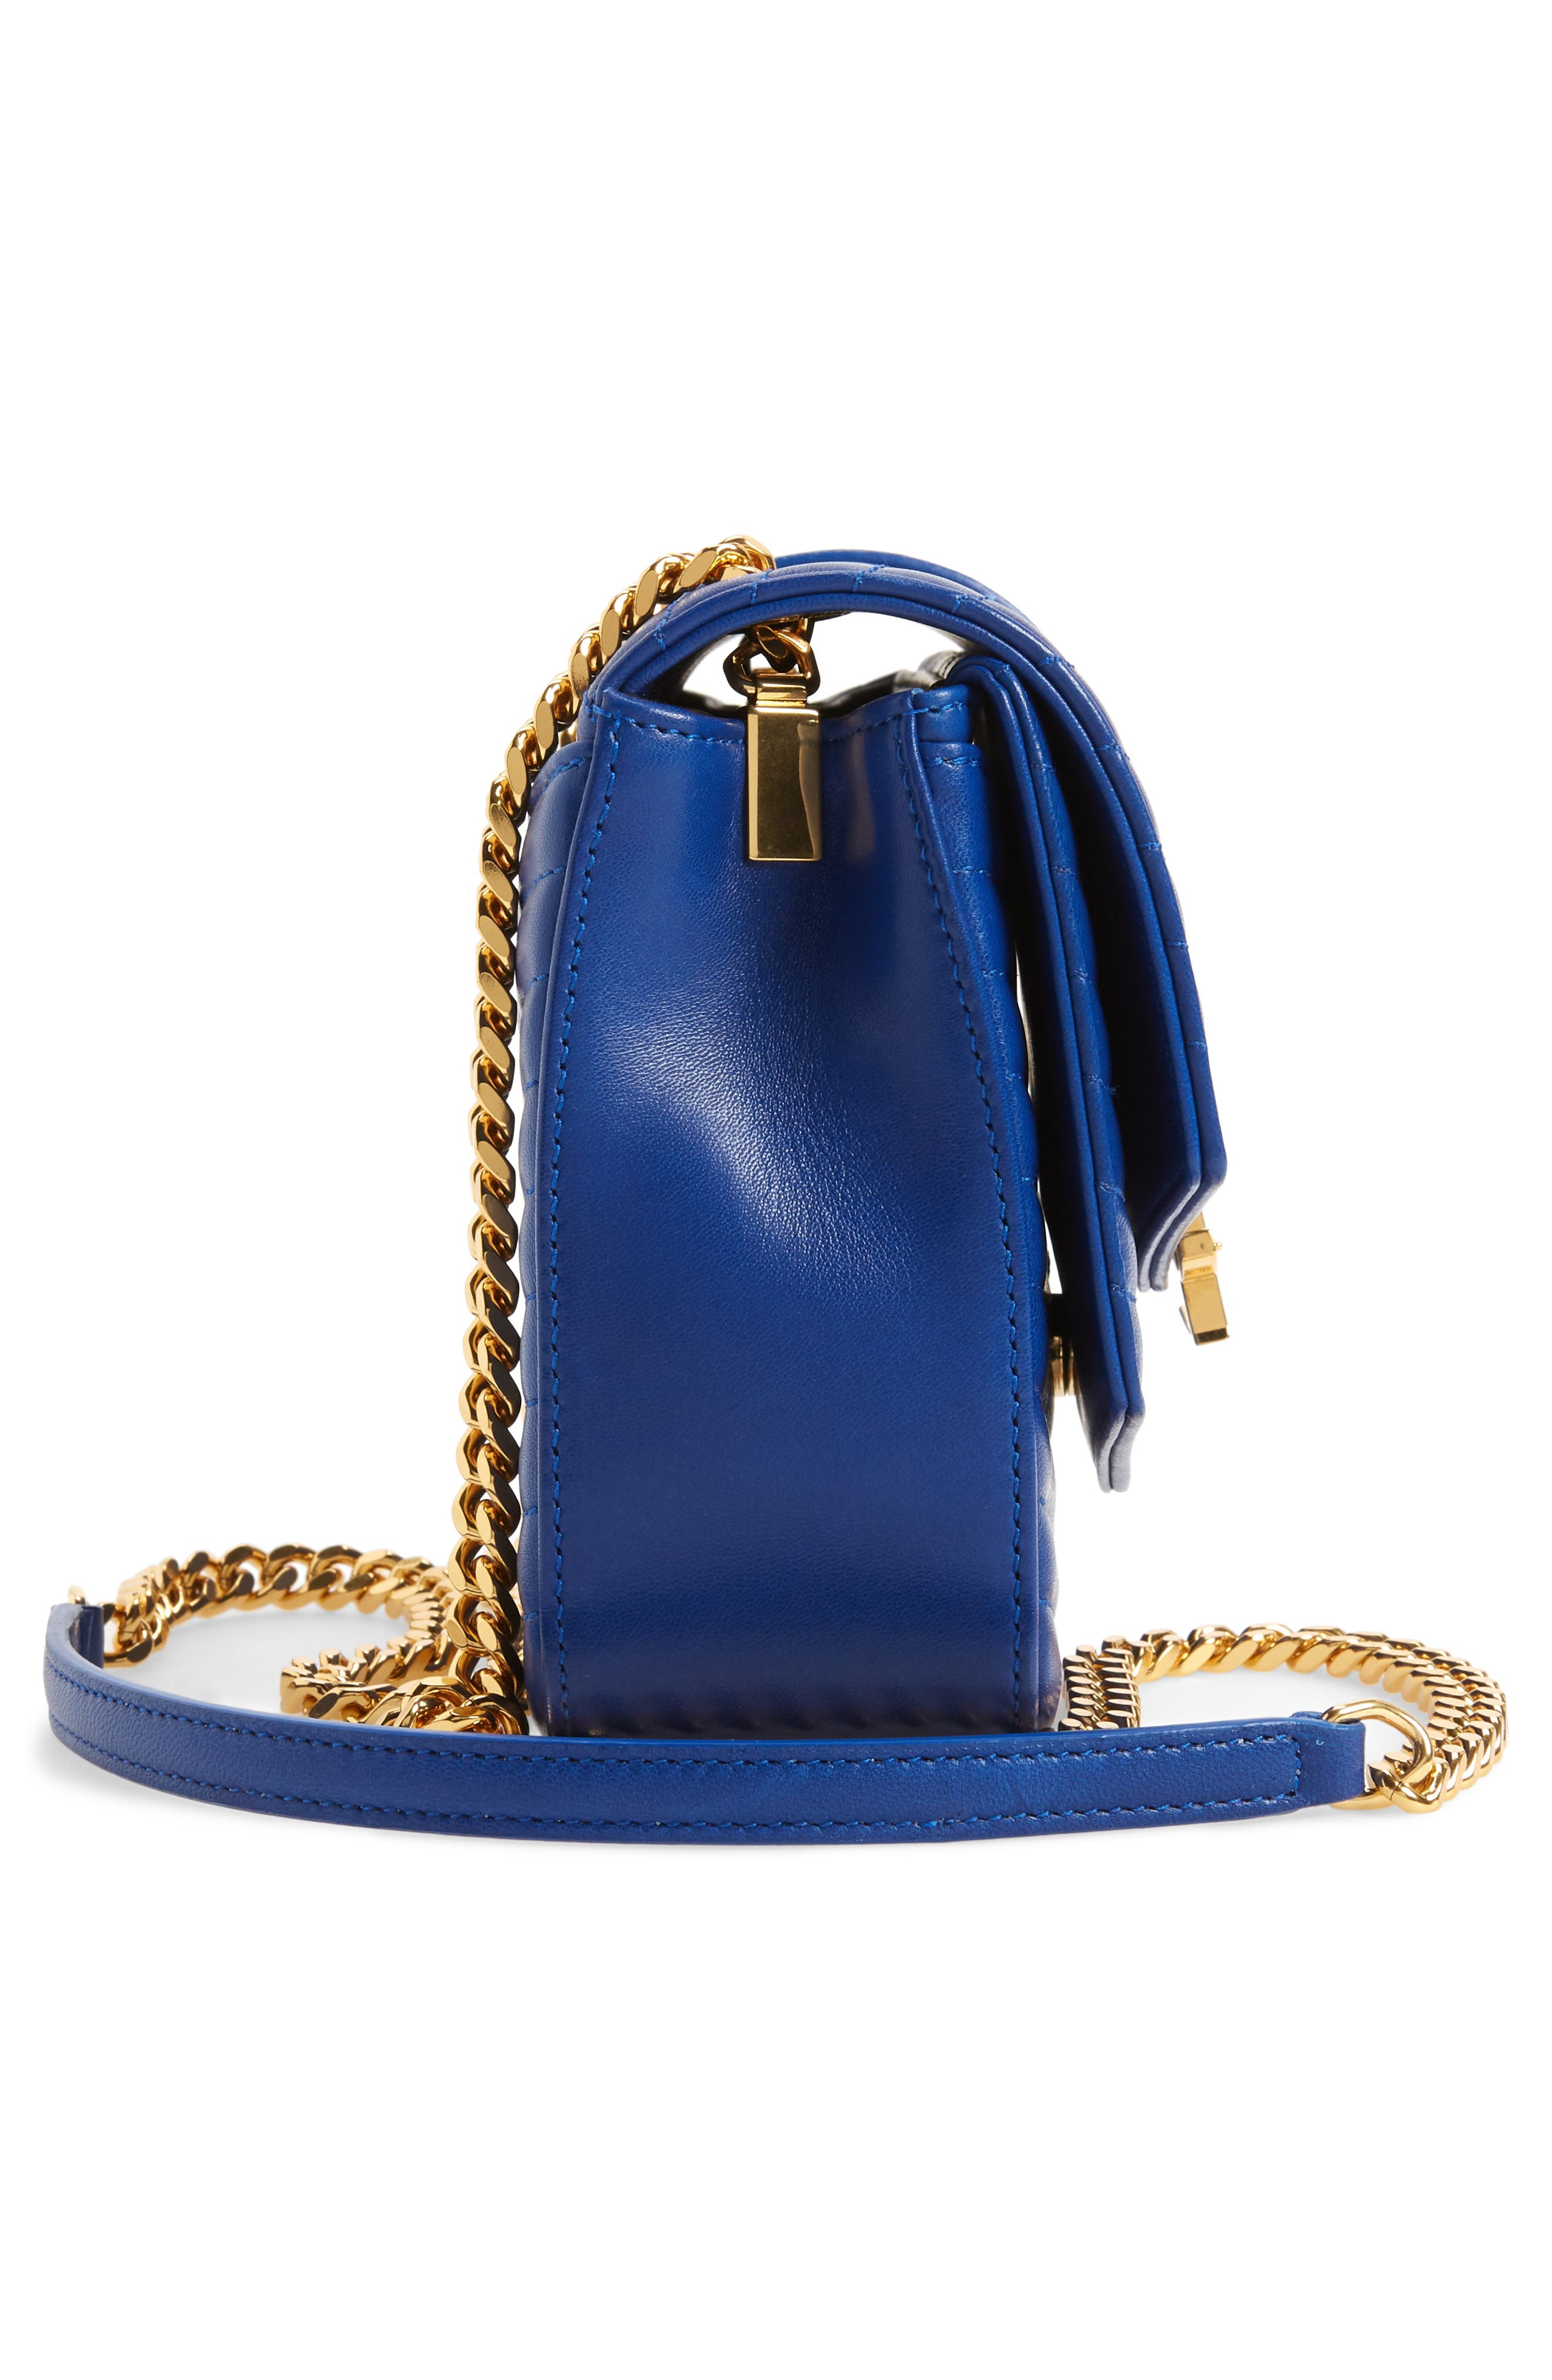 Montaigne Quilted Lambskin Crossbody Bag,                             Alternate thumbnail 5, color,                             BRIGHT BLUE